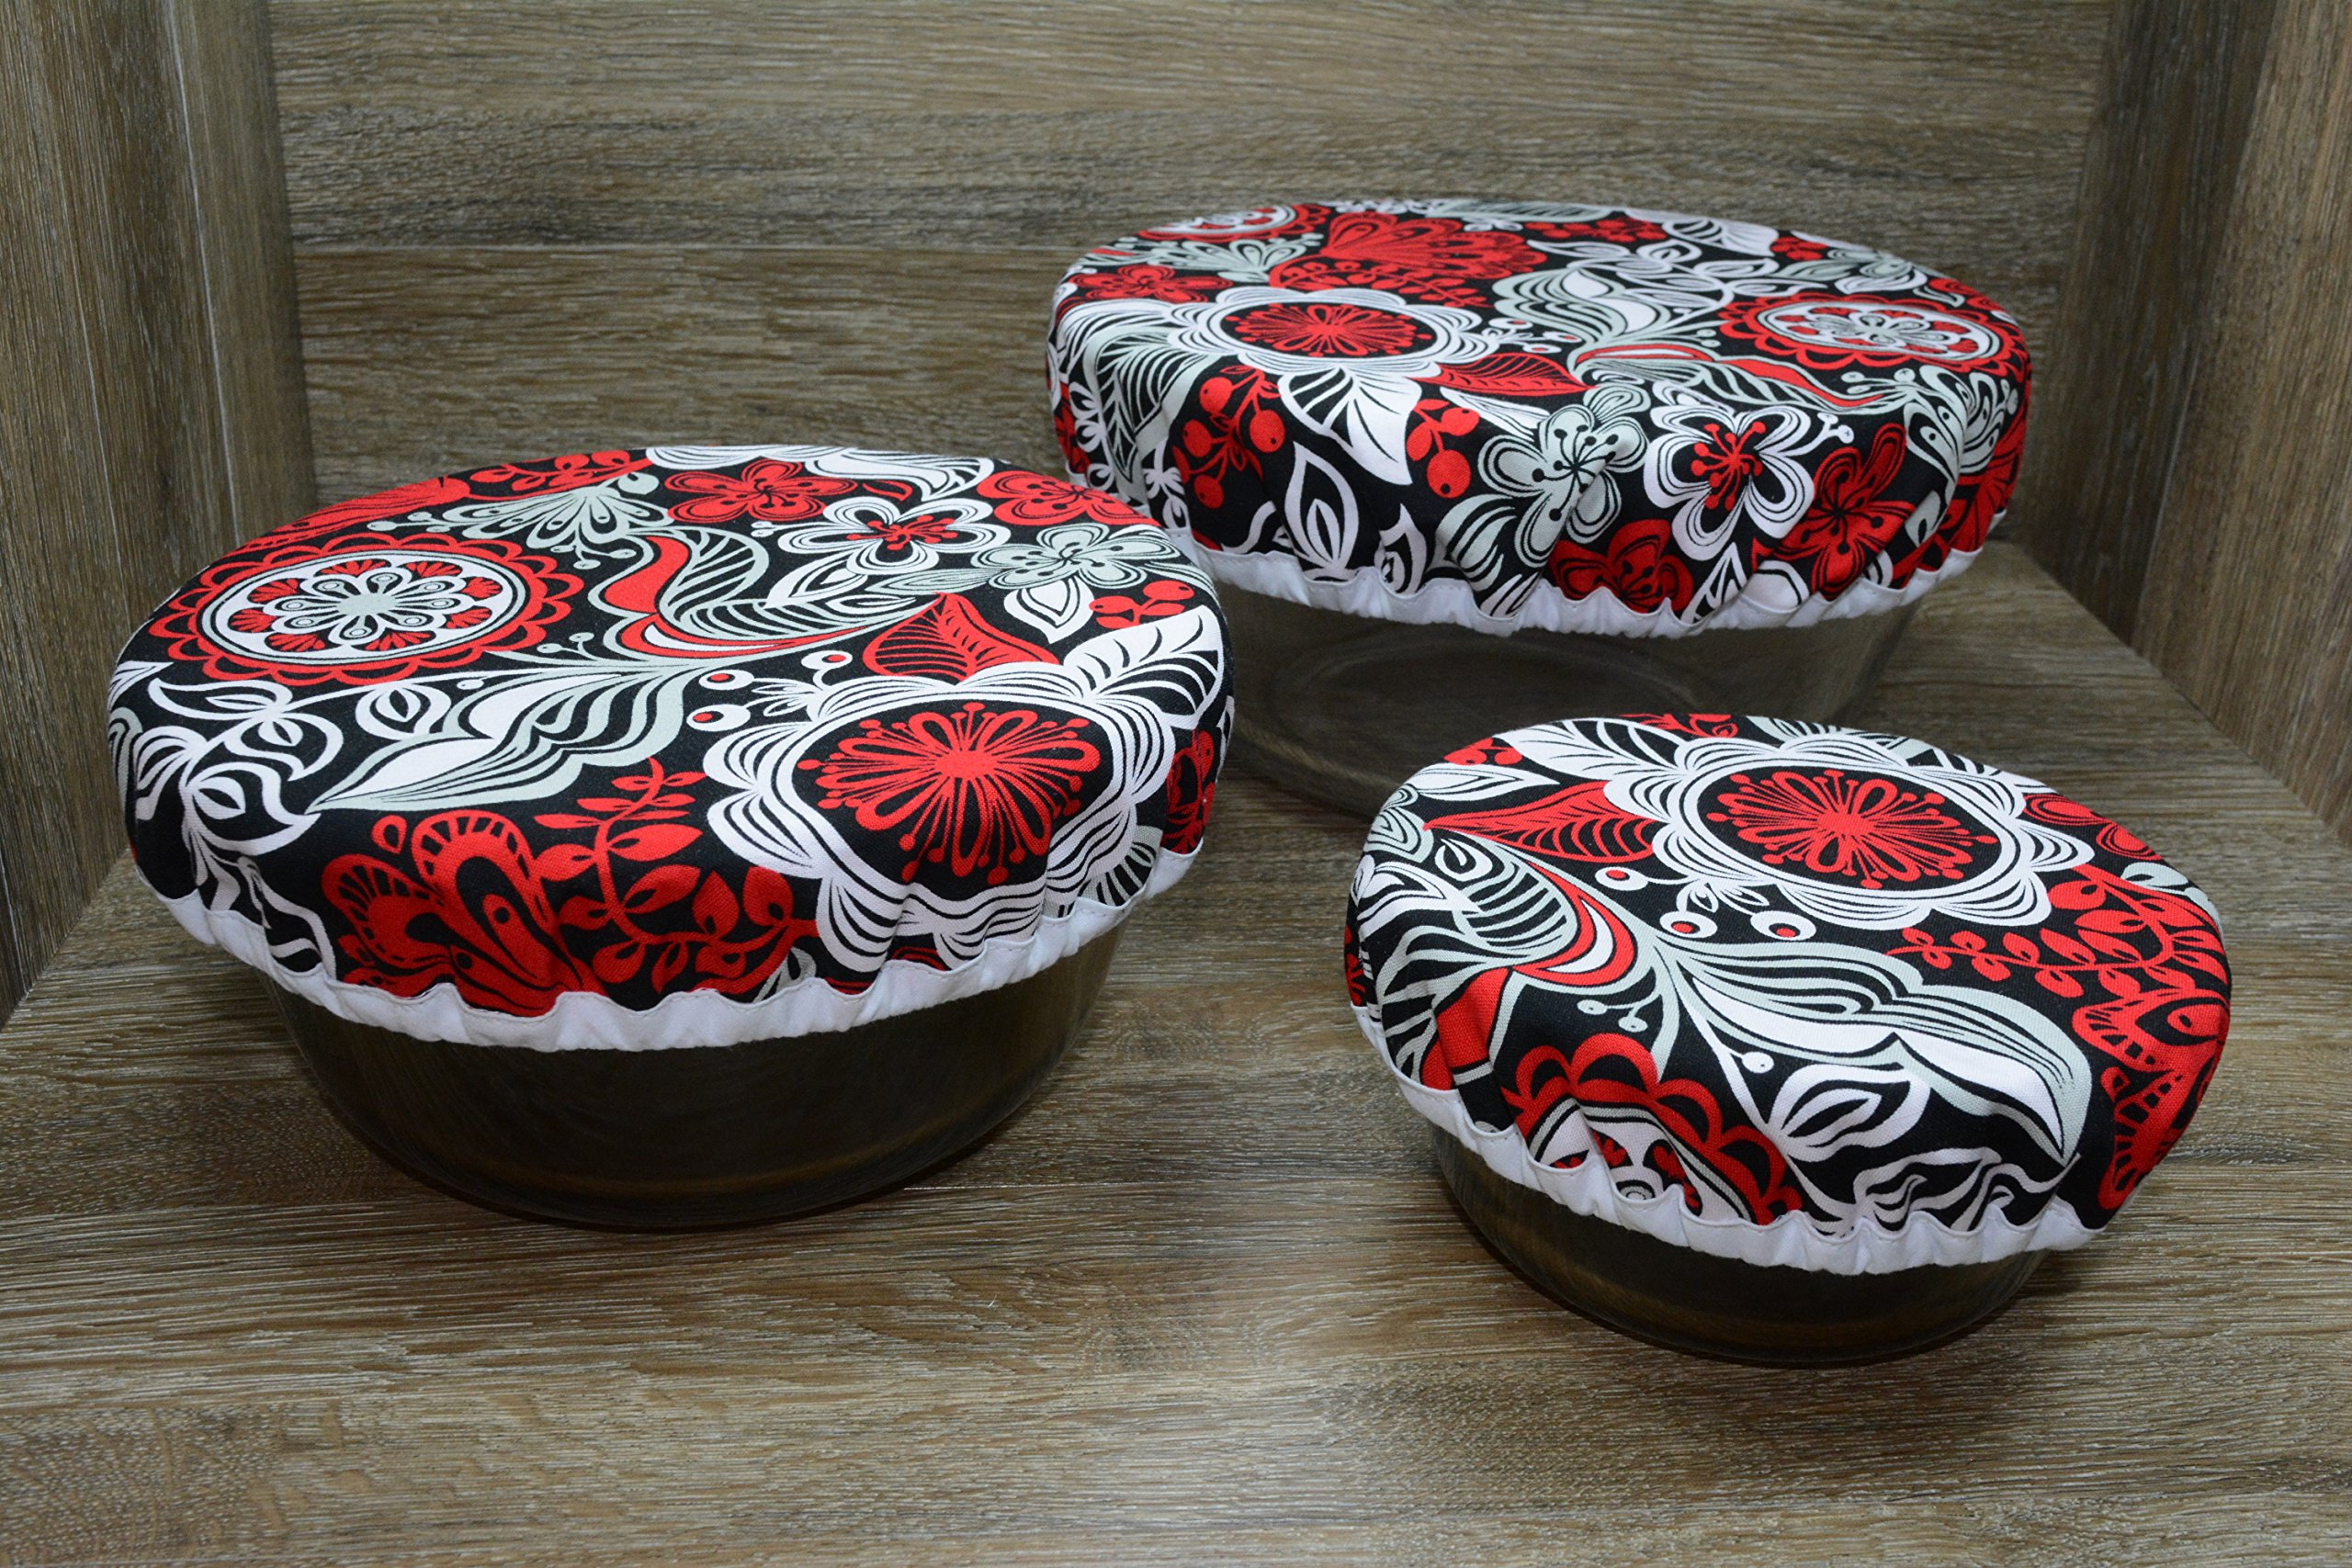 Eco-Friendly // Reusable // Bowl Covers // Set of 3 // Rockin Red Floral